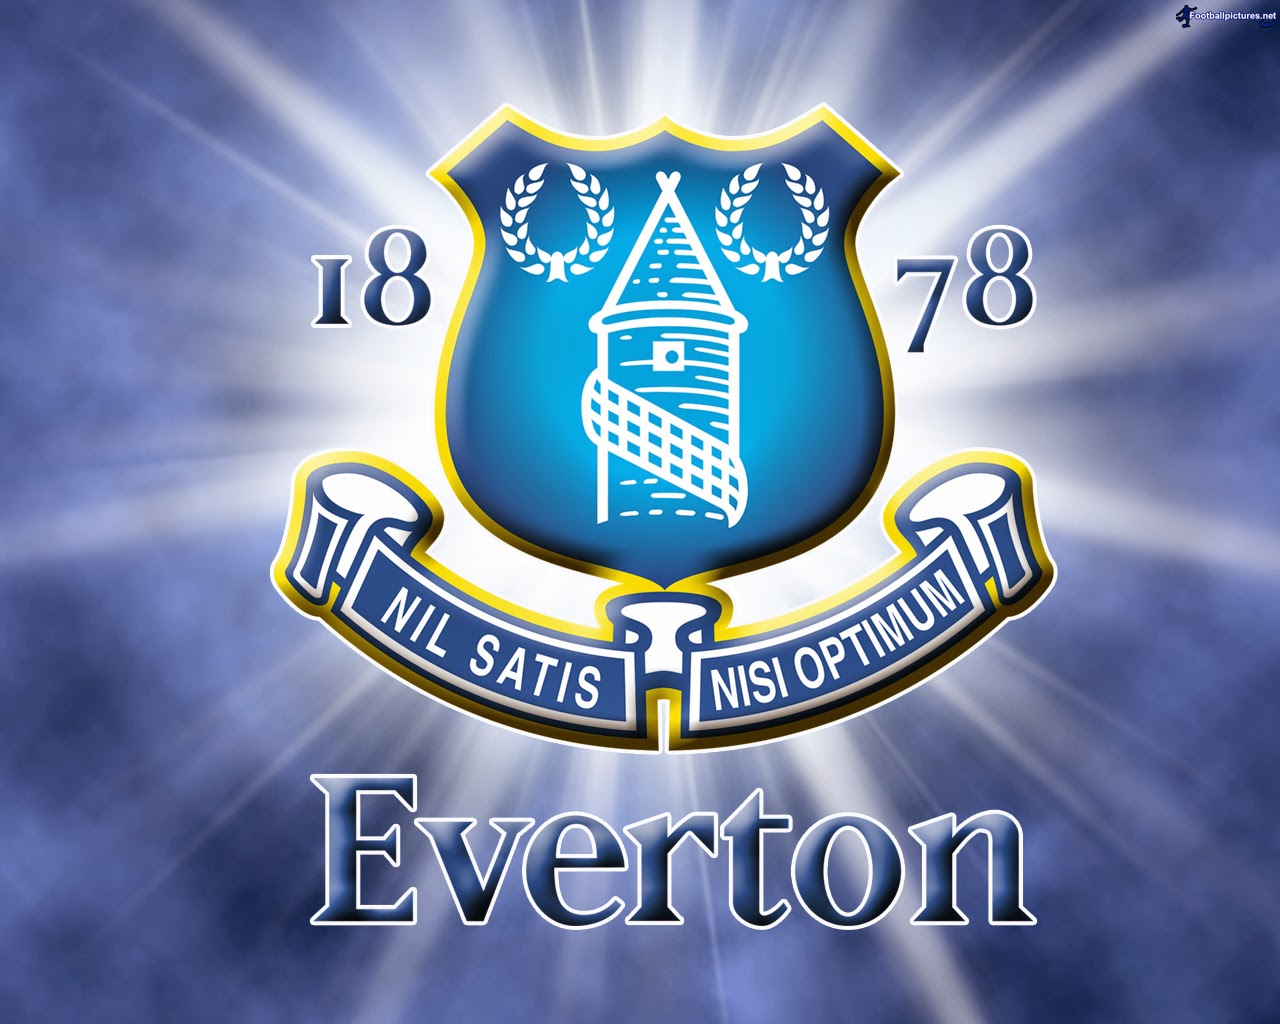 Everton Wallpaper 21   1280 X 1024 stmednet 1280x1024